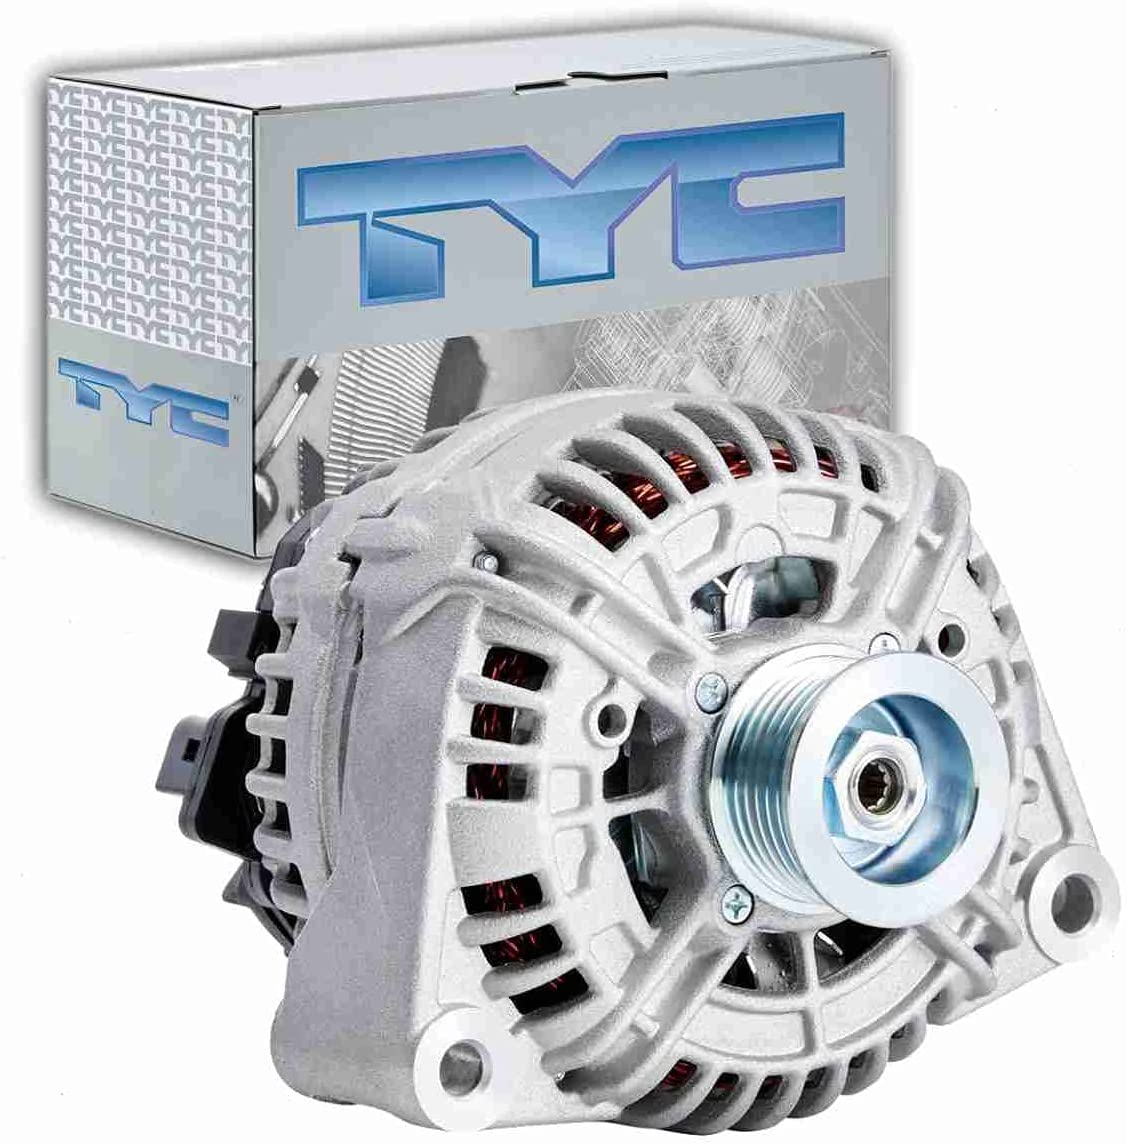 Las Vegas Mall TYC Alternator compatible with Mercedes-Benz V8 S430 Omaha Mall 2002-2 4.3L